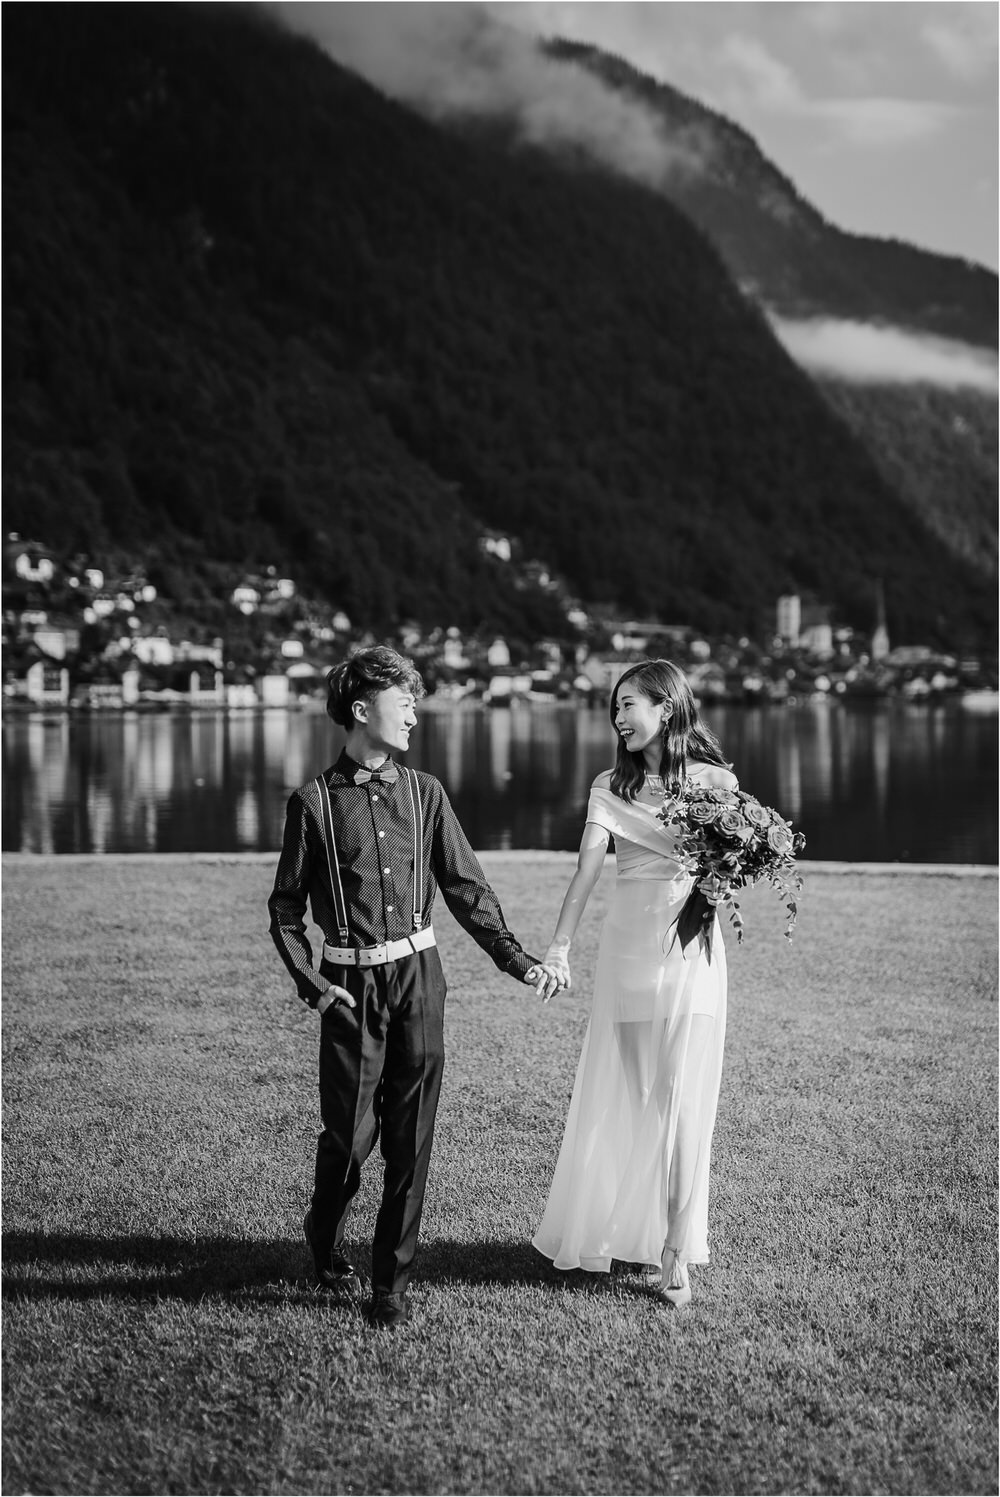 hallstatt austria wedding engagement photographer asian proposal surprise photography recommended nature professional 0055.jpg